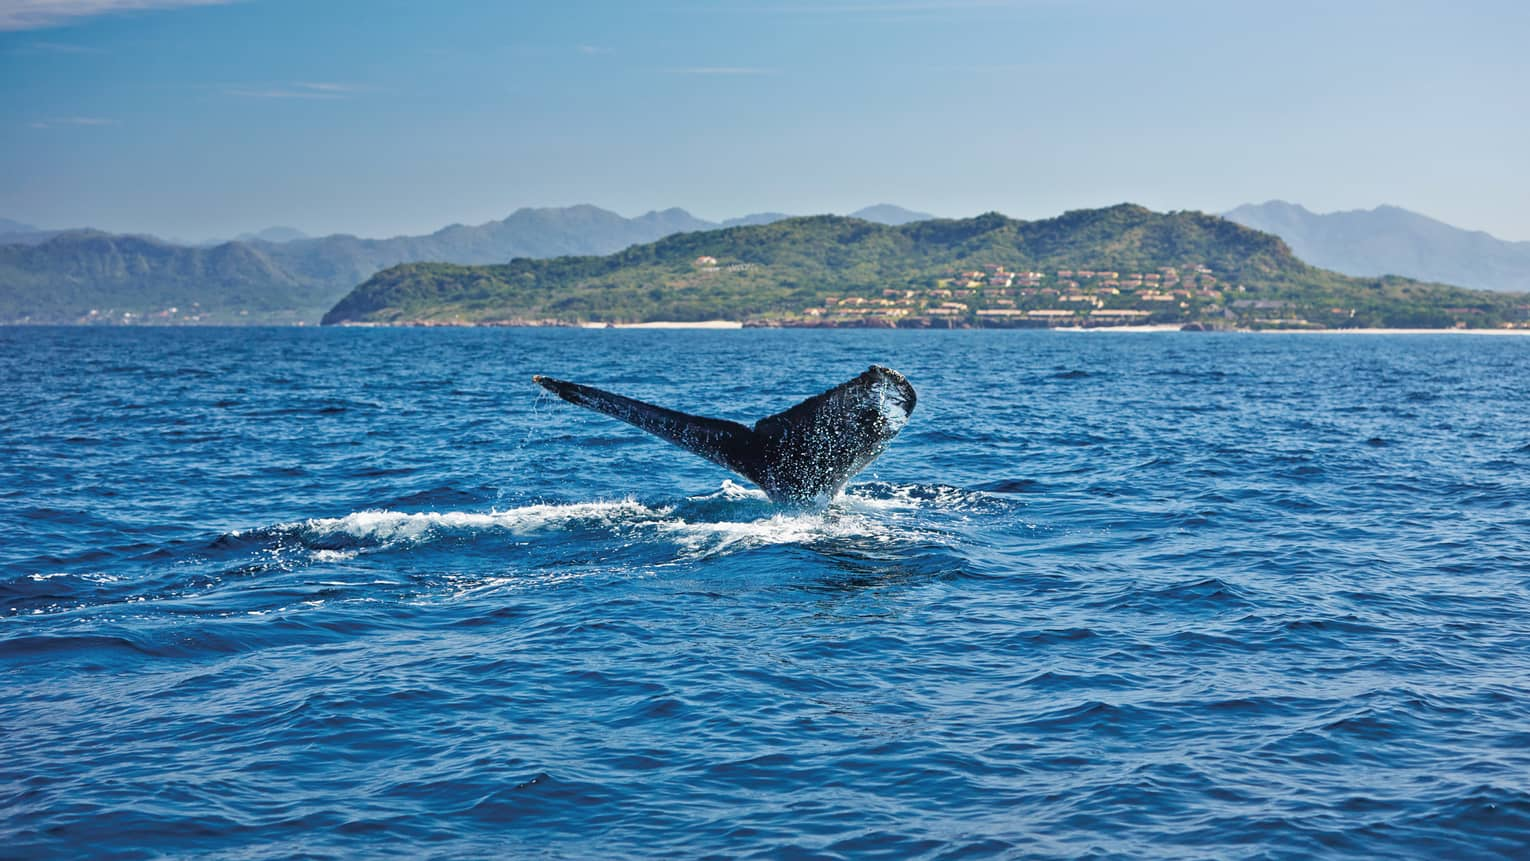 Humpback whale's tail cuts through water on ocean, green shores in background